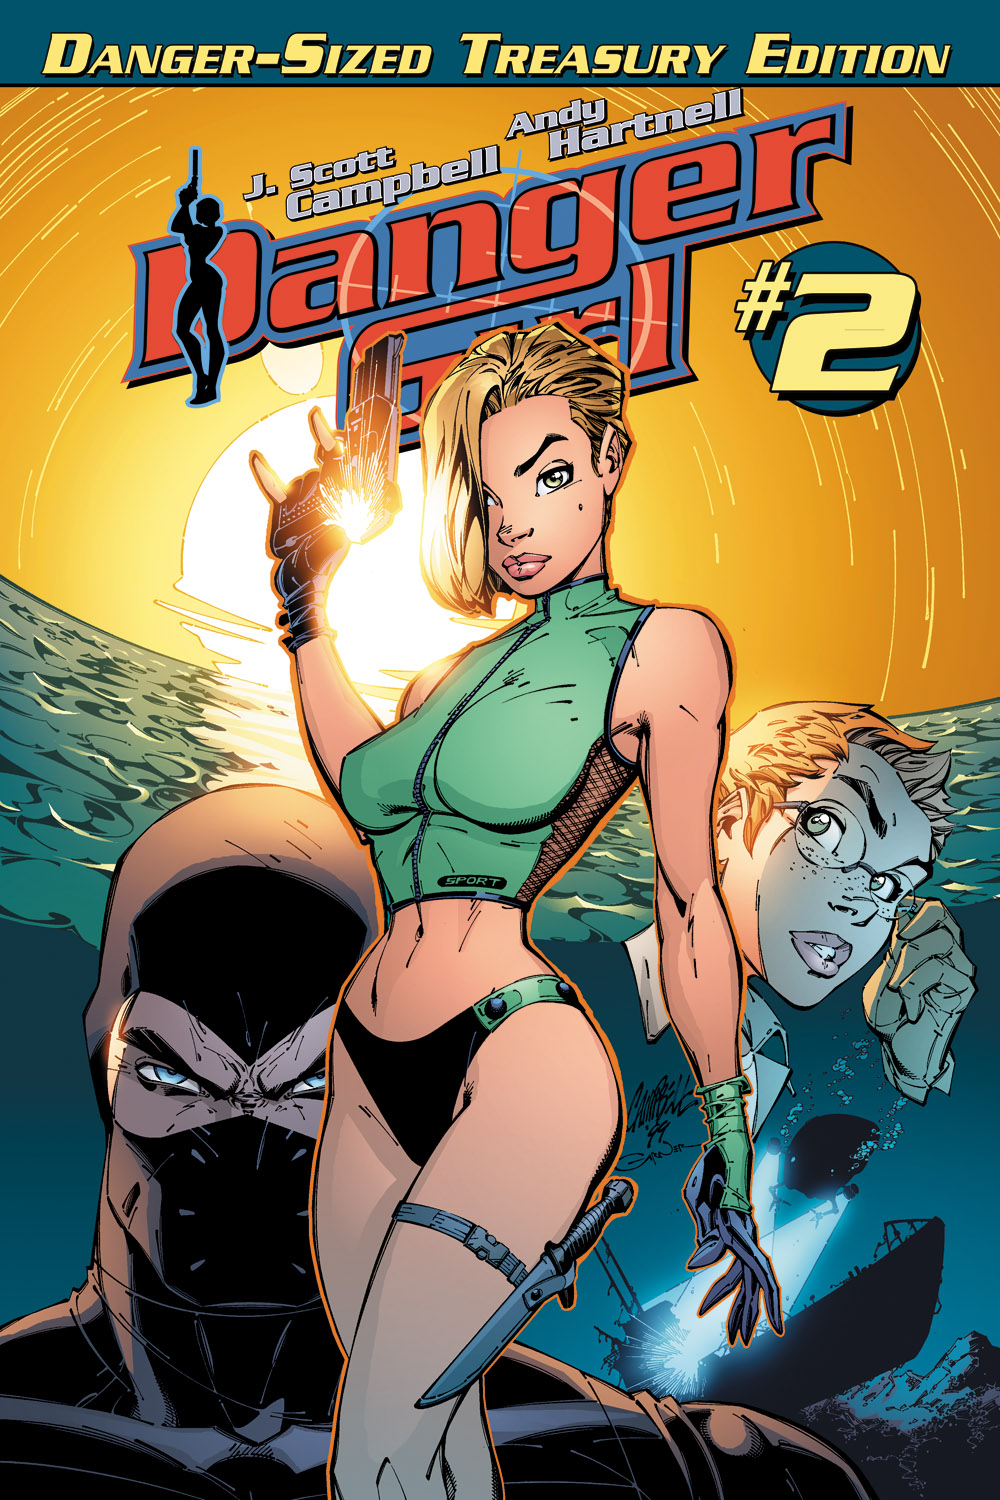 Danger Girl Treasury Edition #2